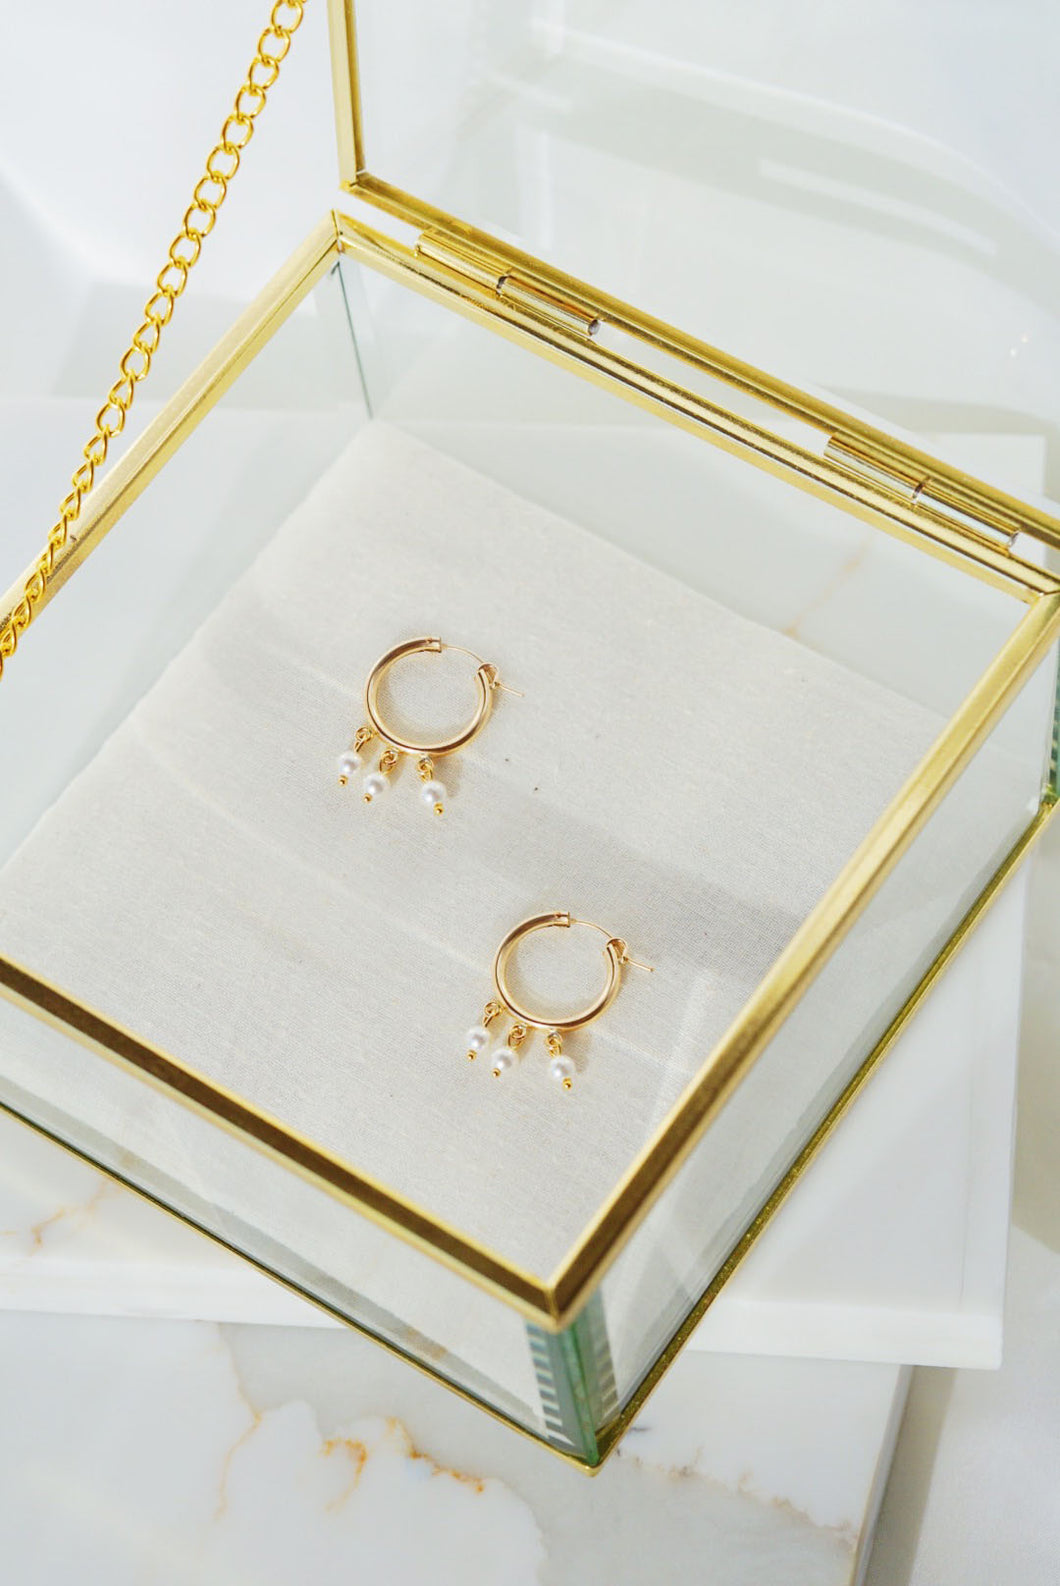 NEWPORT Gold Filled Hoop Earrings- Small Pearl